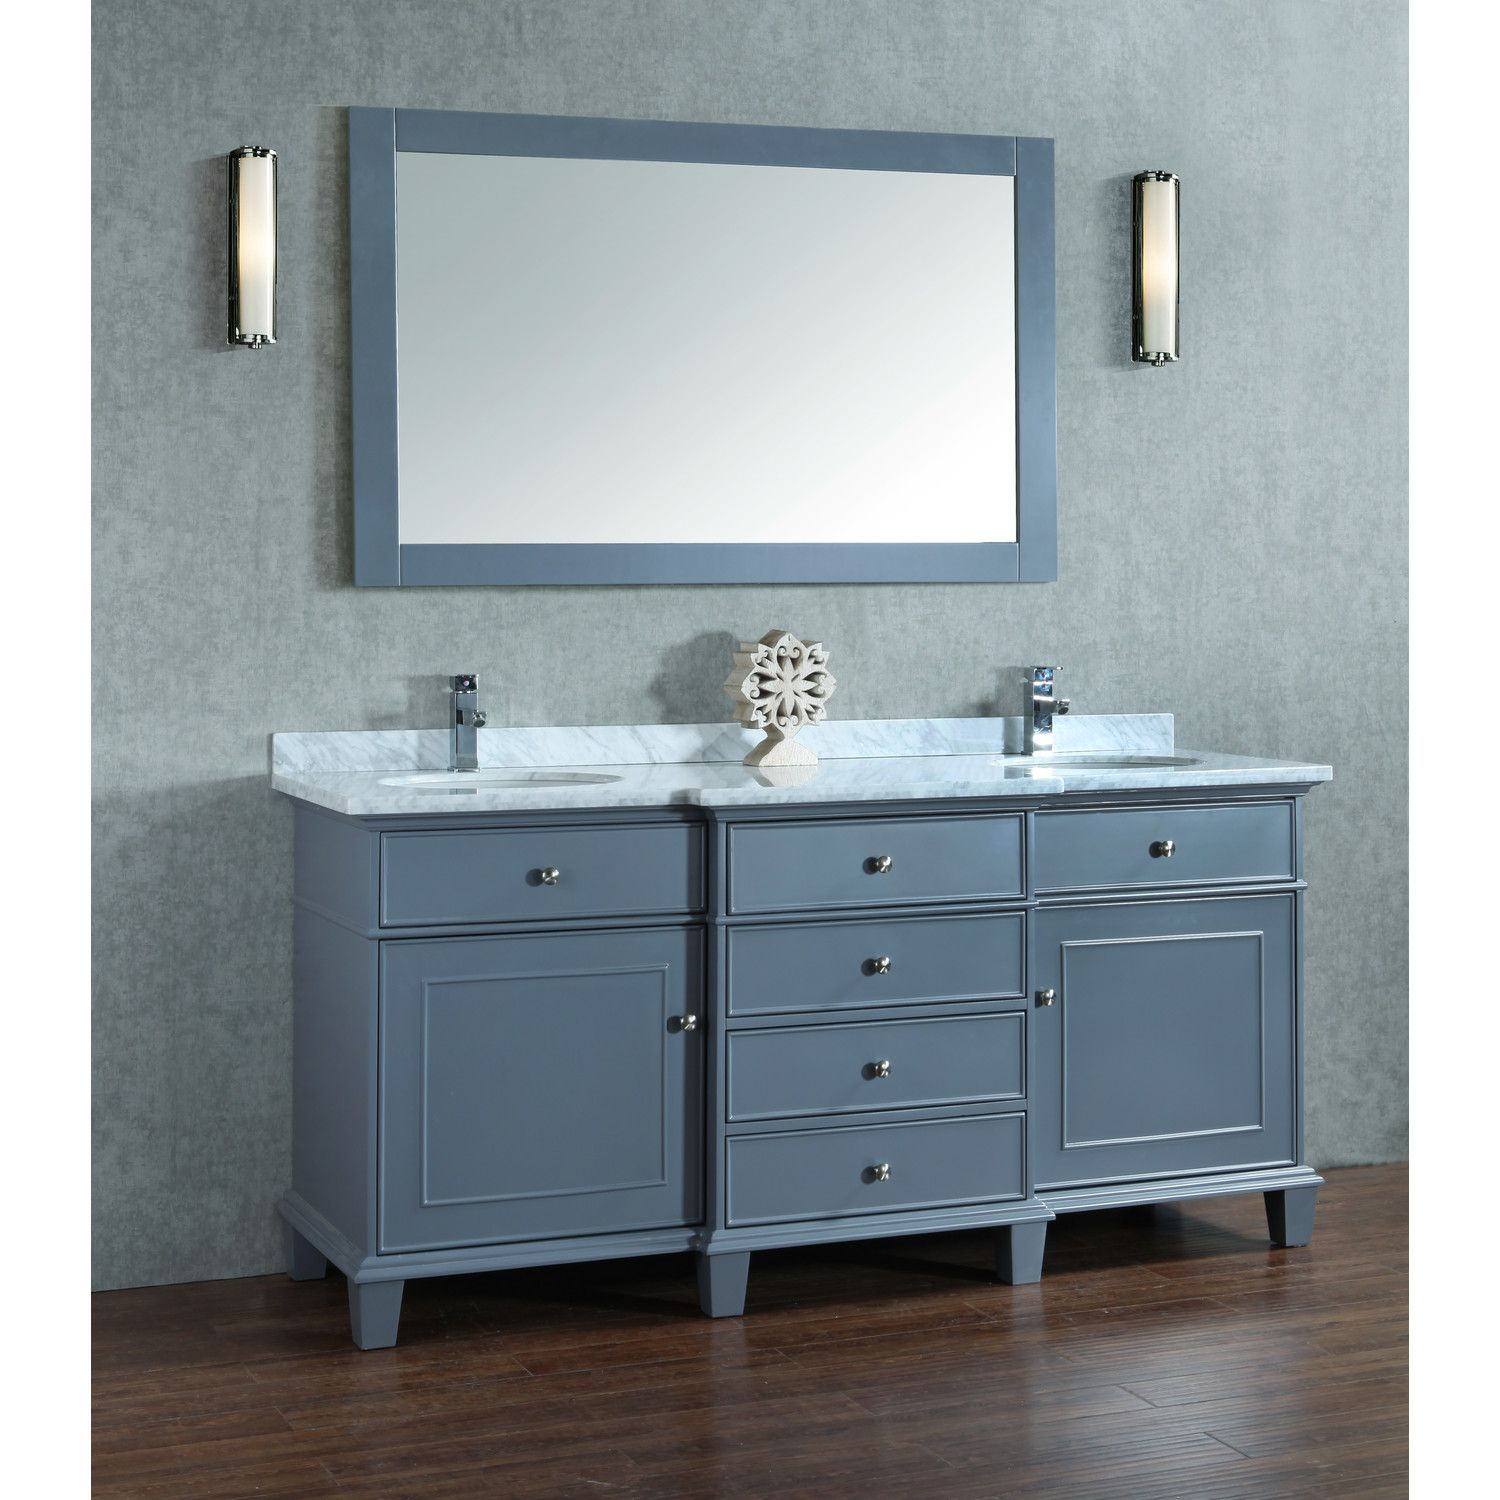 Adana 72 Inch Gray Double Sink Bathroom Vanity Set Gorgeous Unit